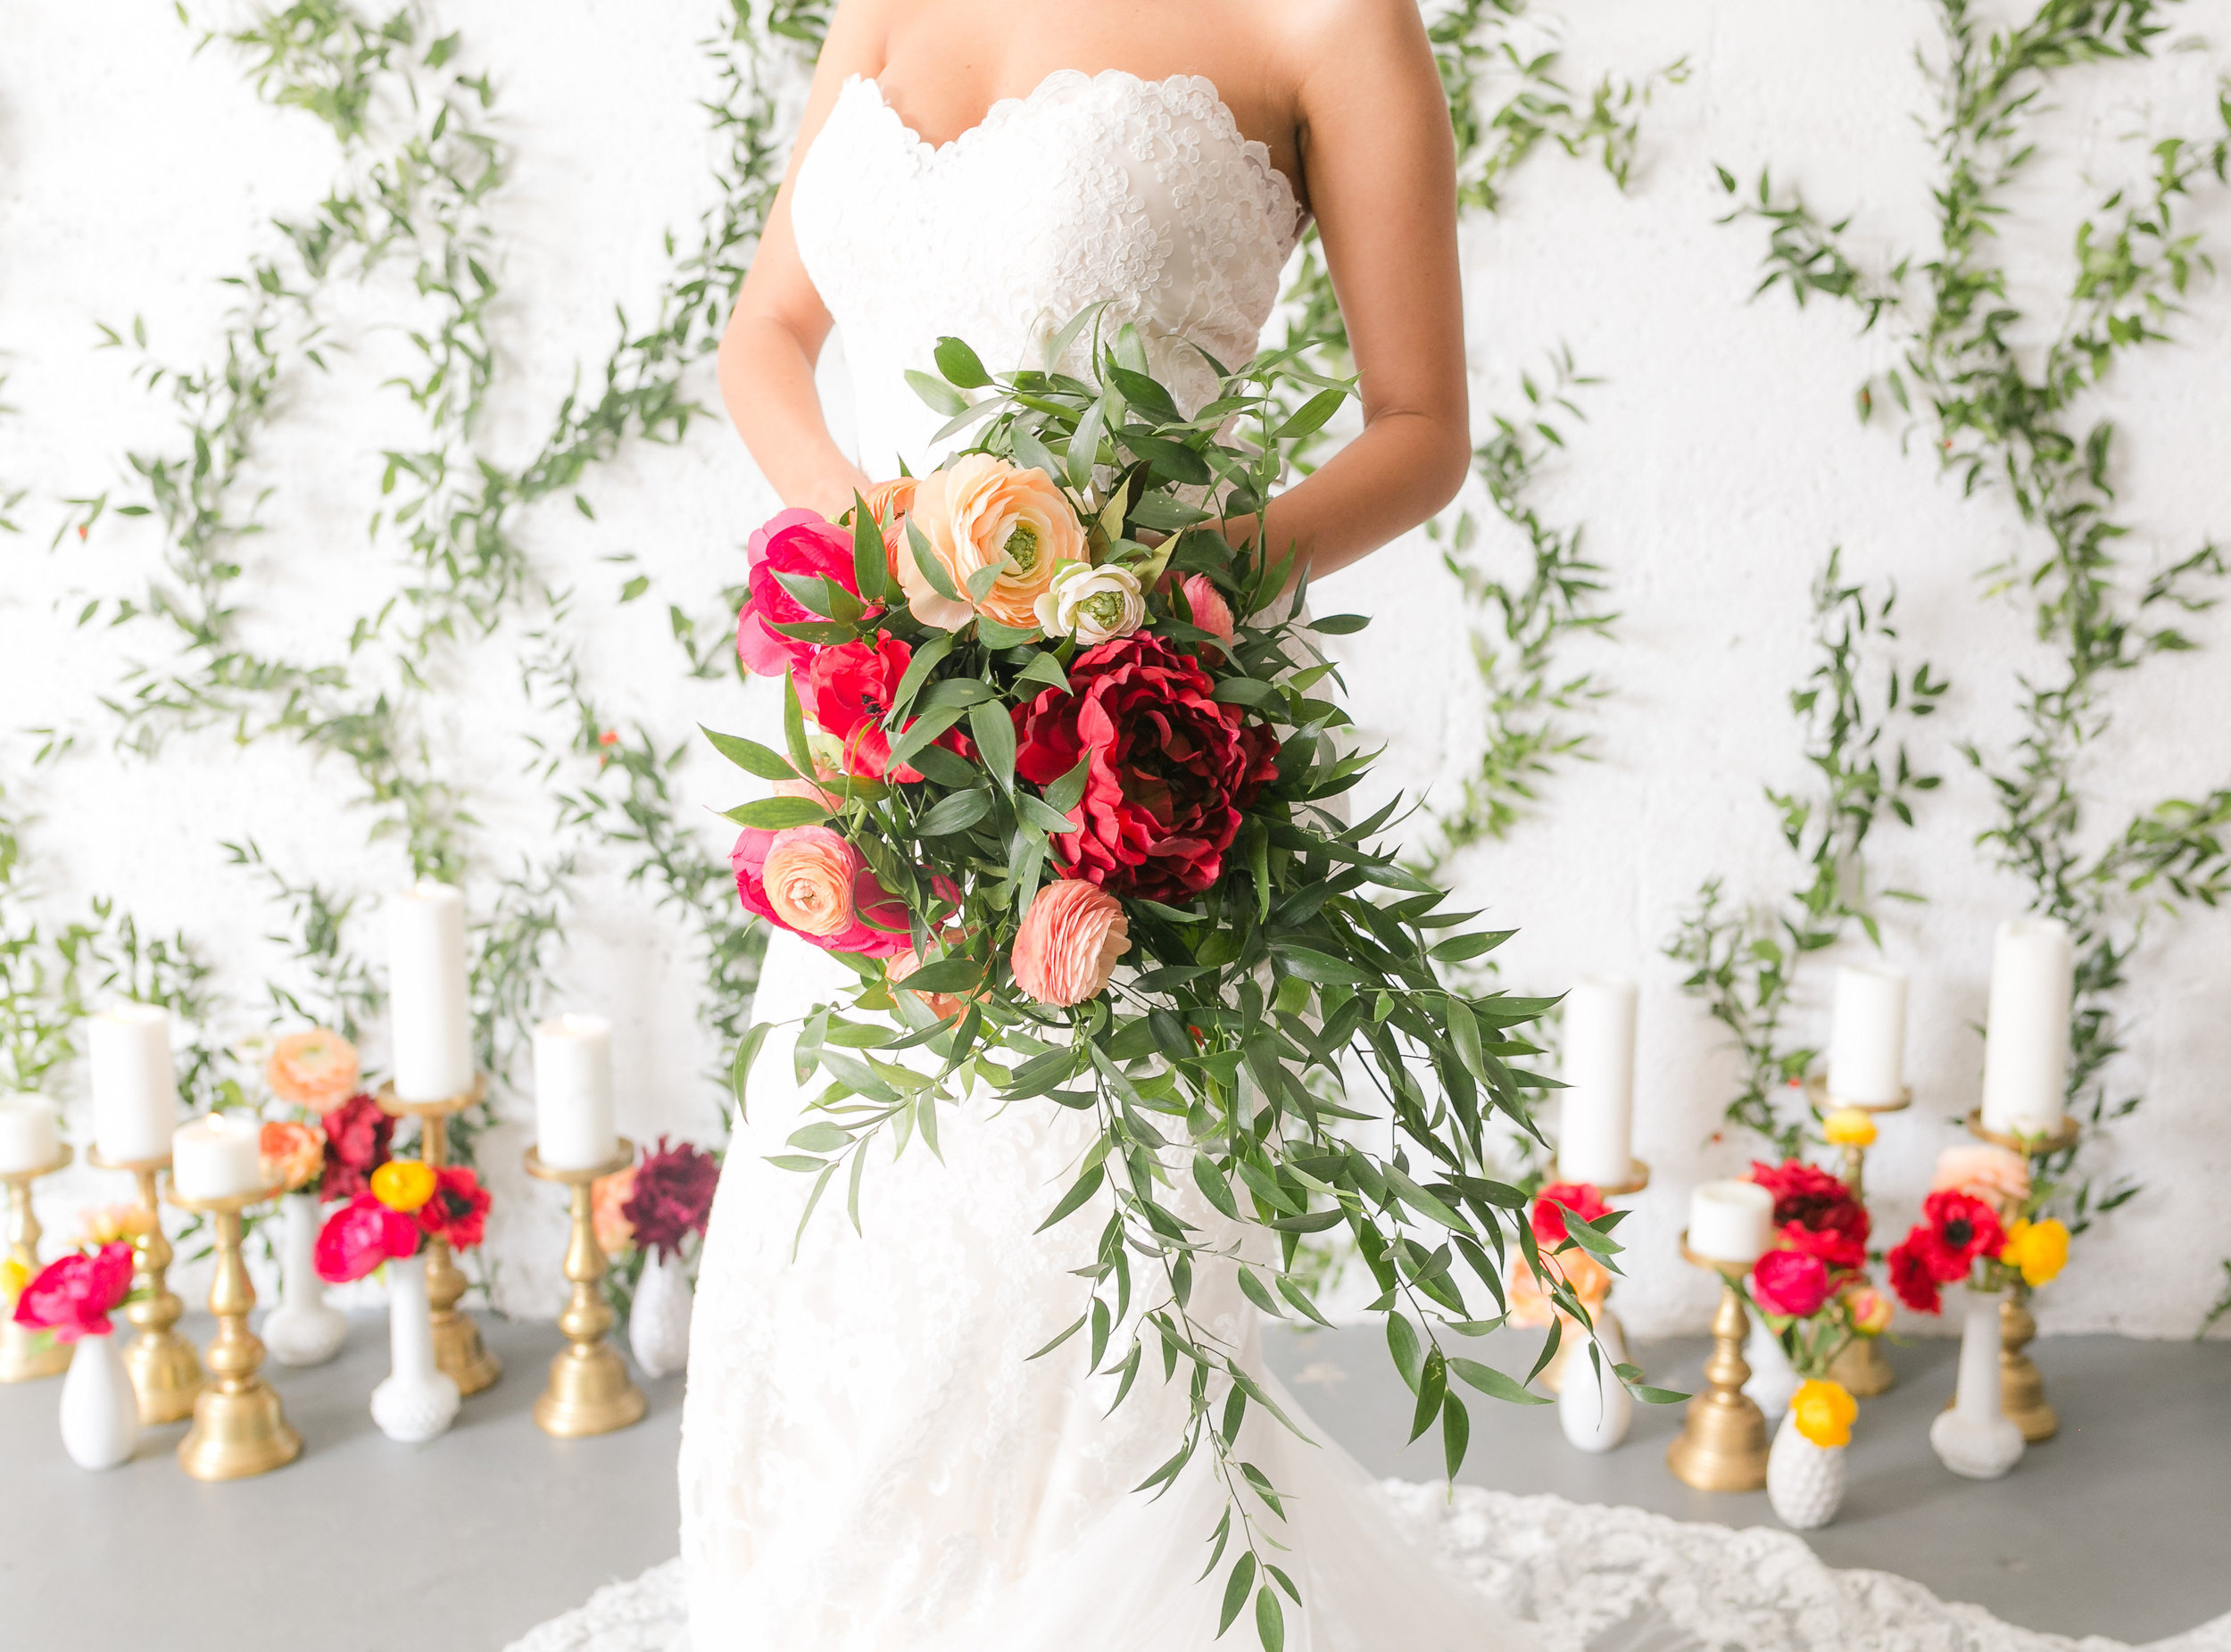 Colorful Wedding Bouquet - Industrial Wedding Decor Ideas